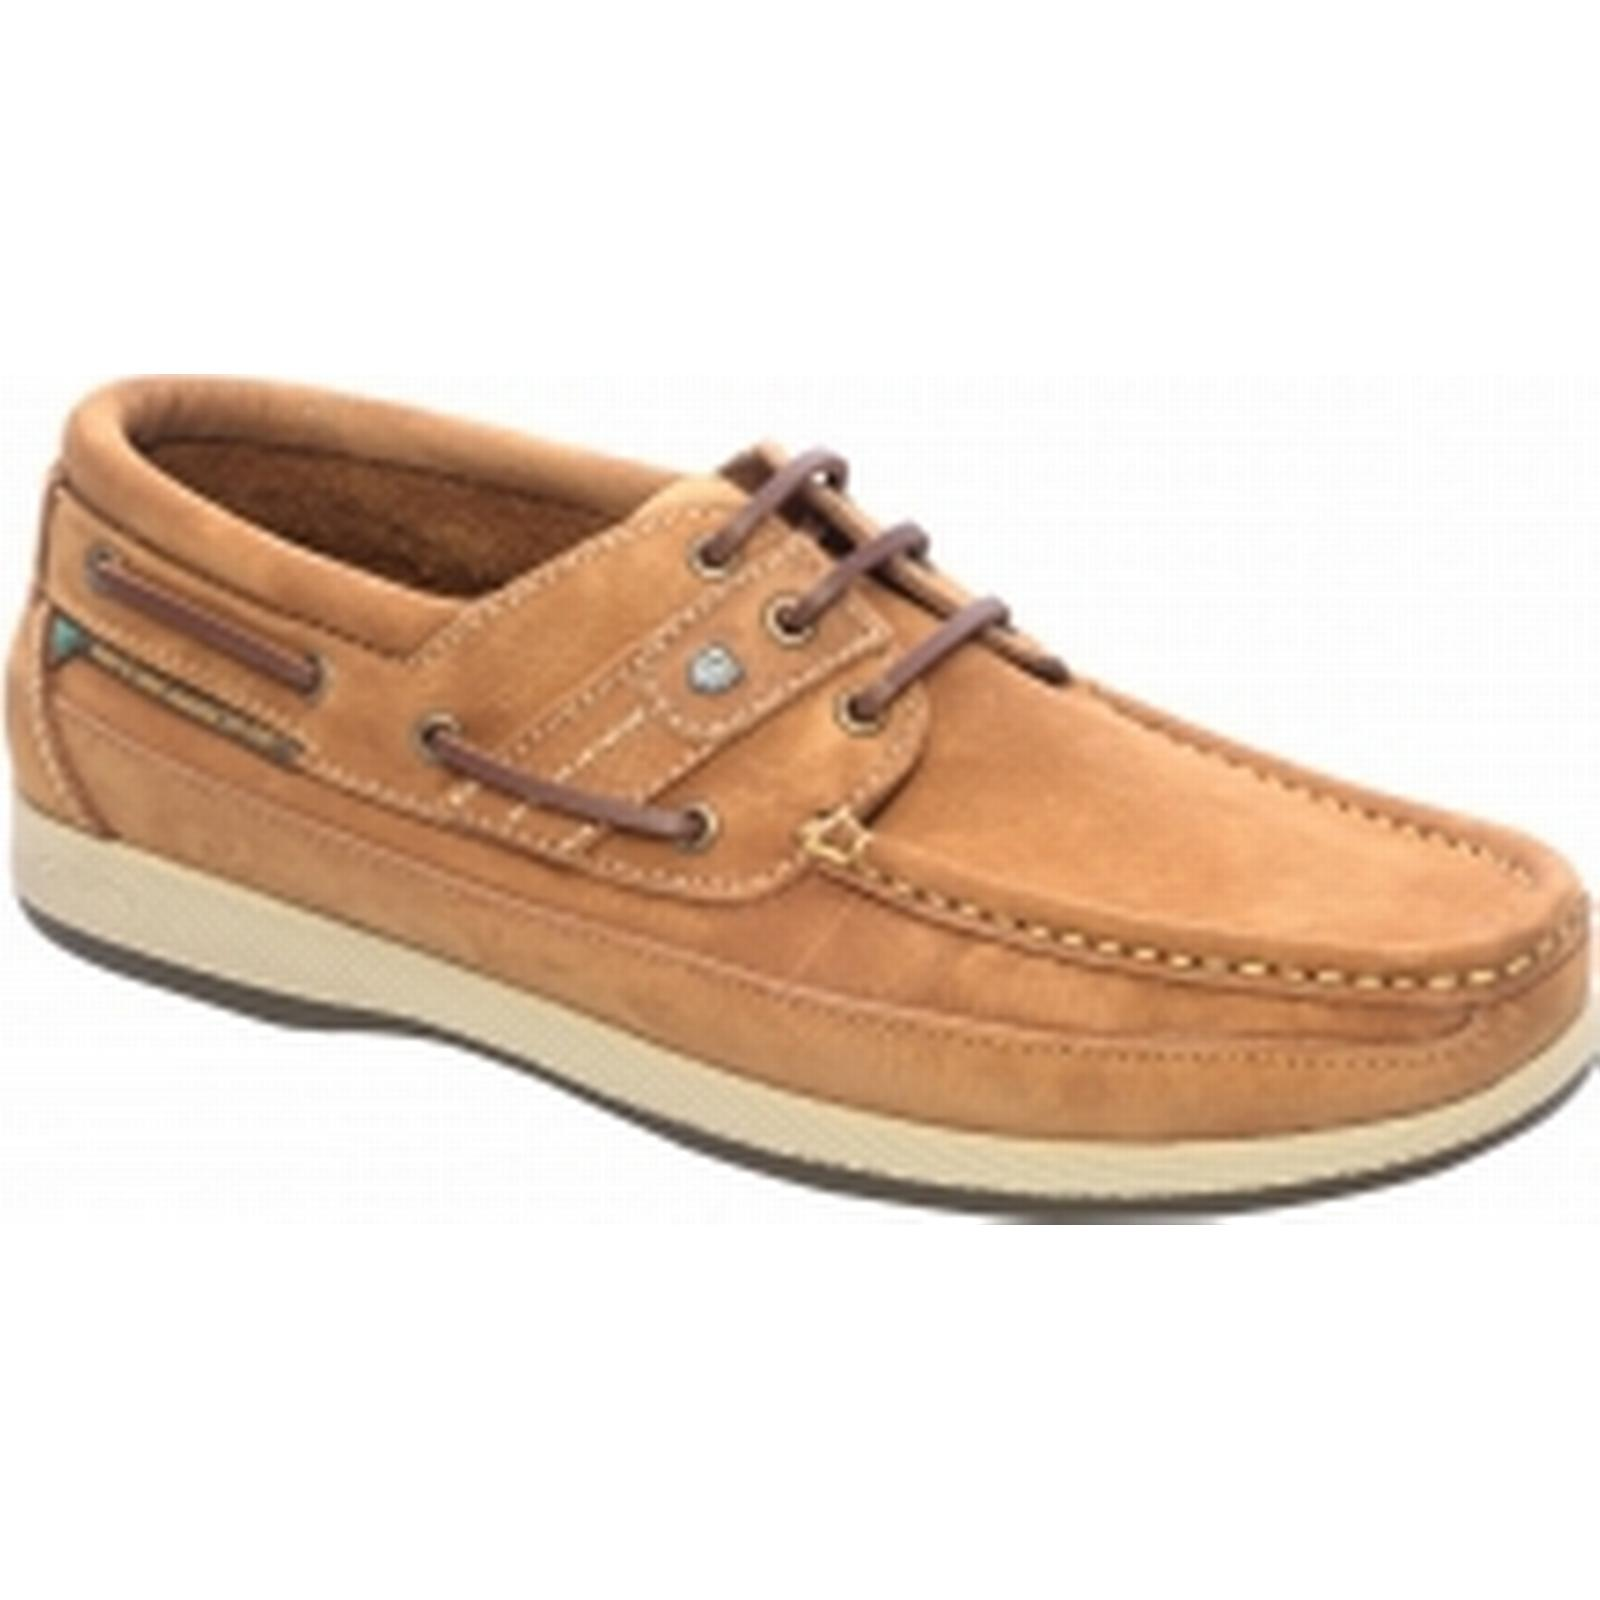 Dubarry Deck Atlantic Deck Dubarry Shoe, Brown, UK 10.5 (EU45) c56543